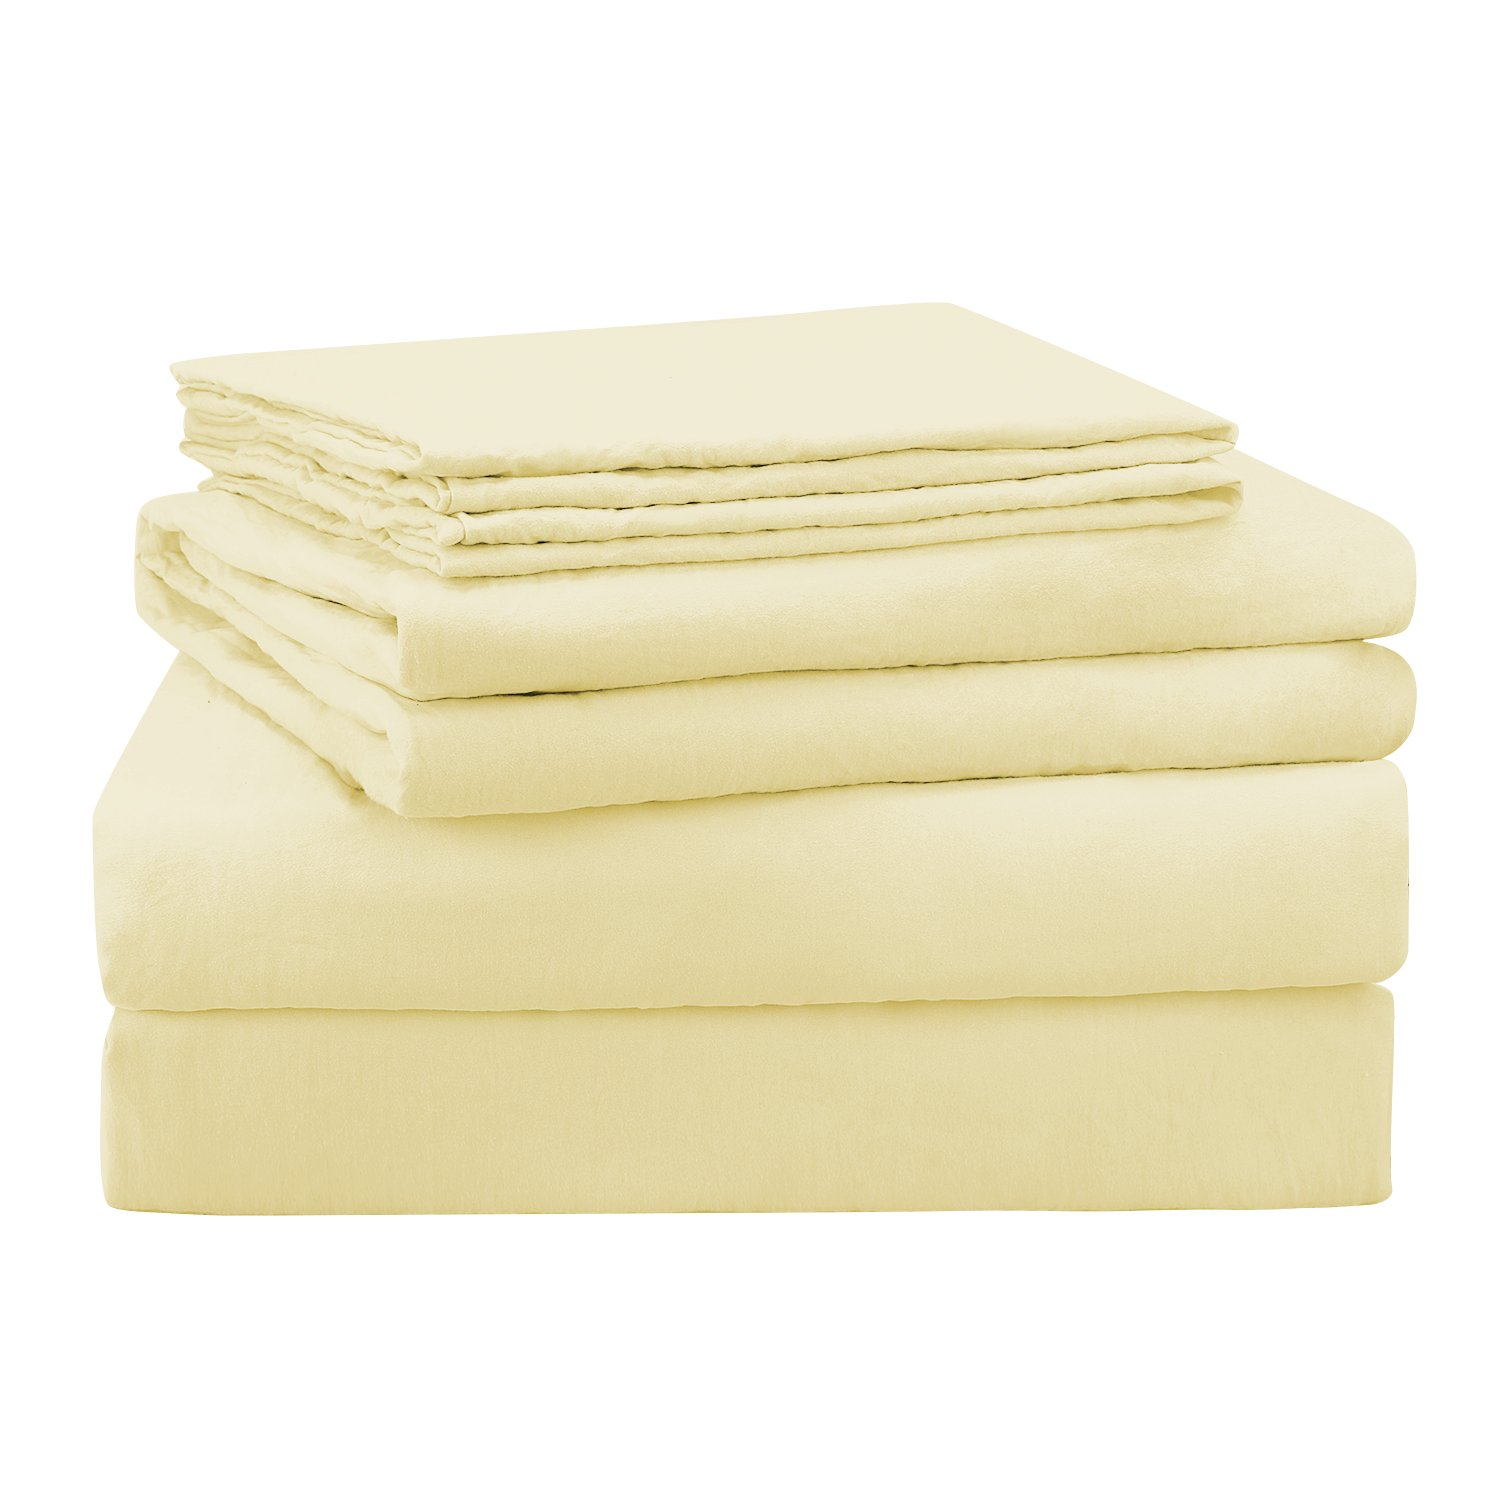 HOMEIDEAS 4 Piece Bed Sheets Set Full, Beige